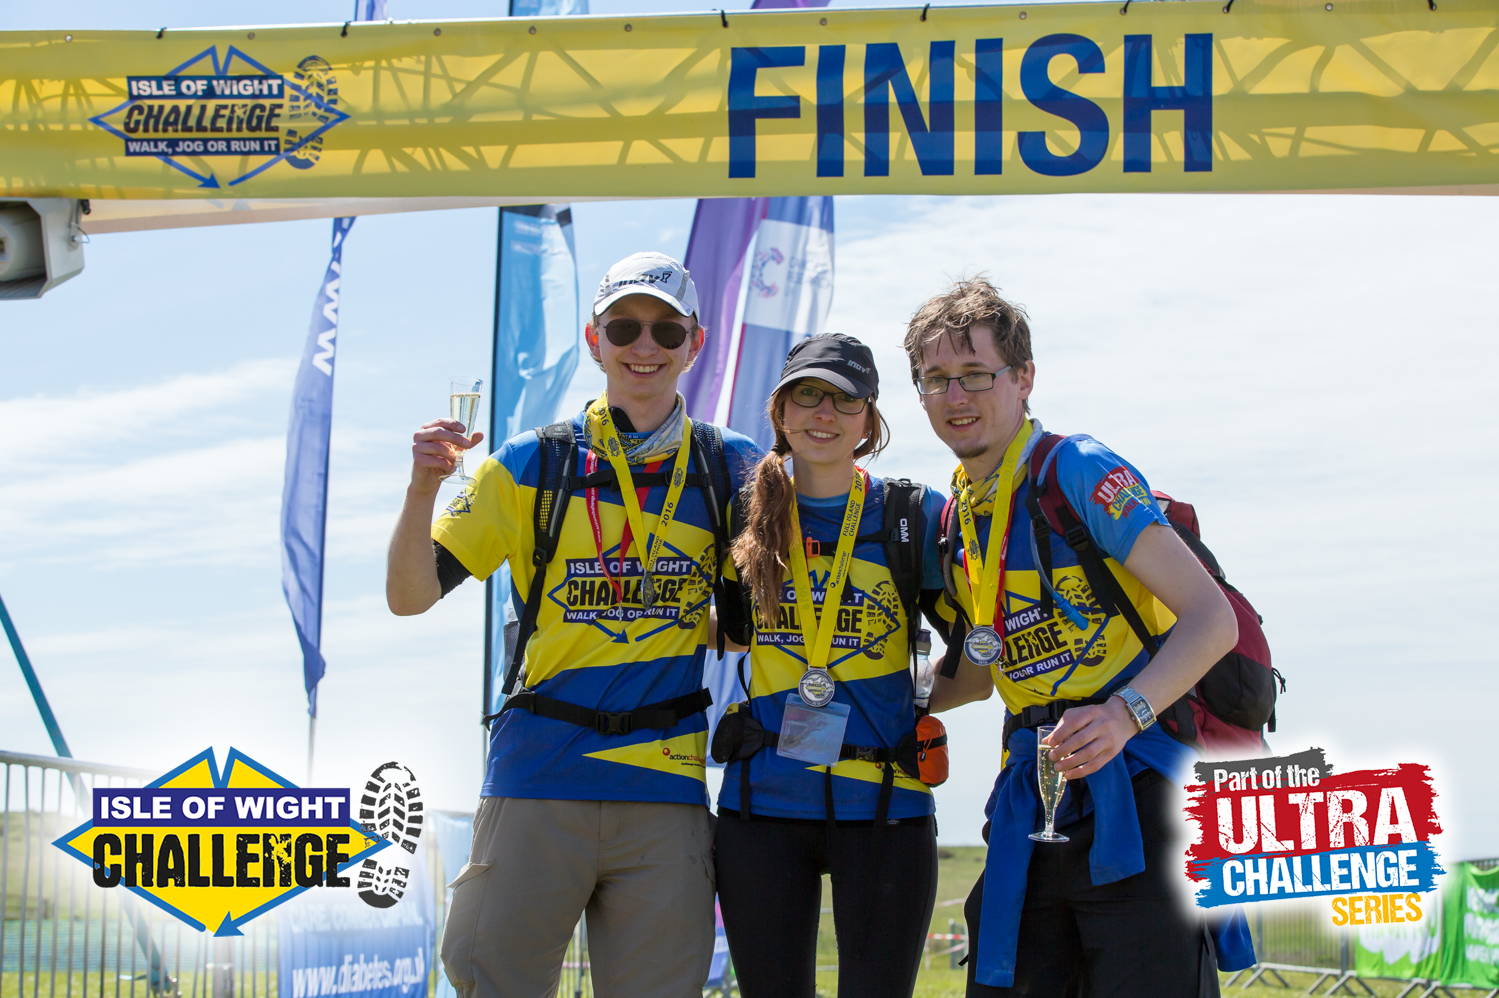 3 walkers at the finish